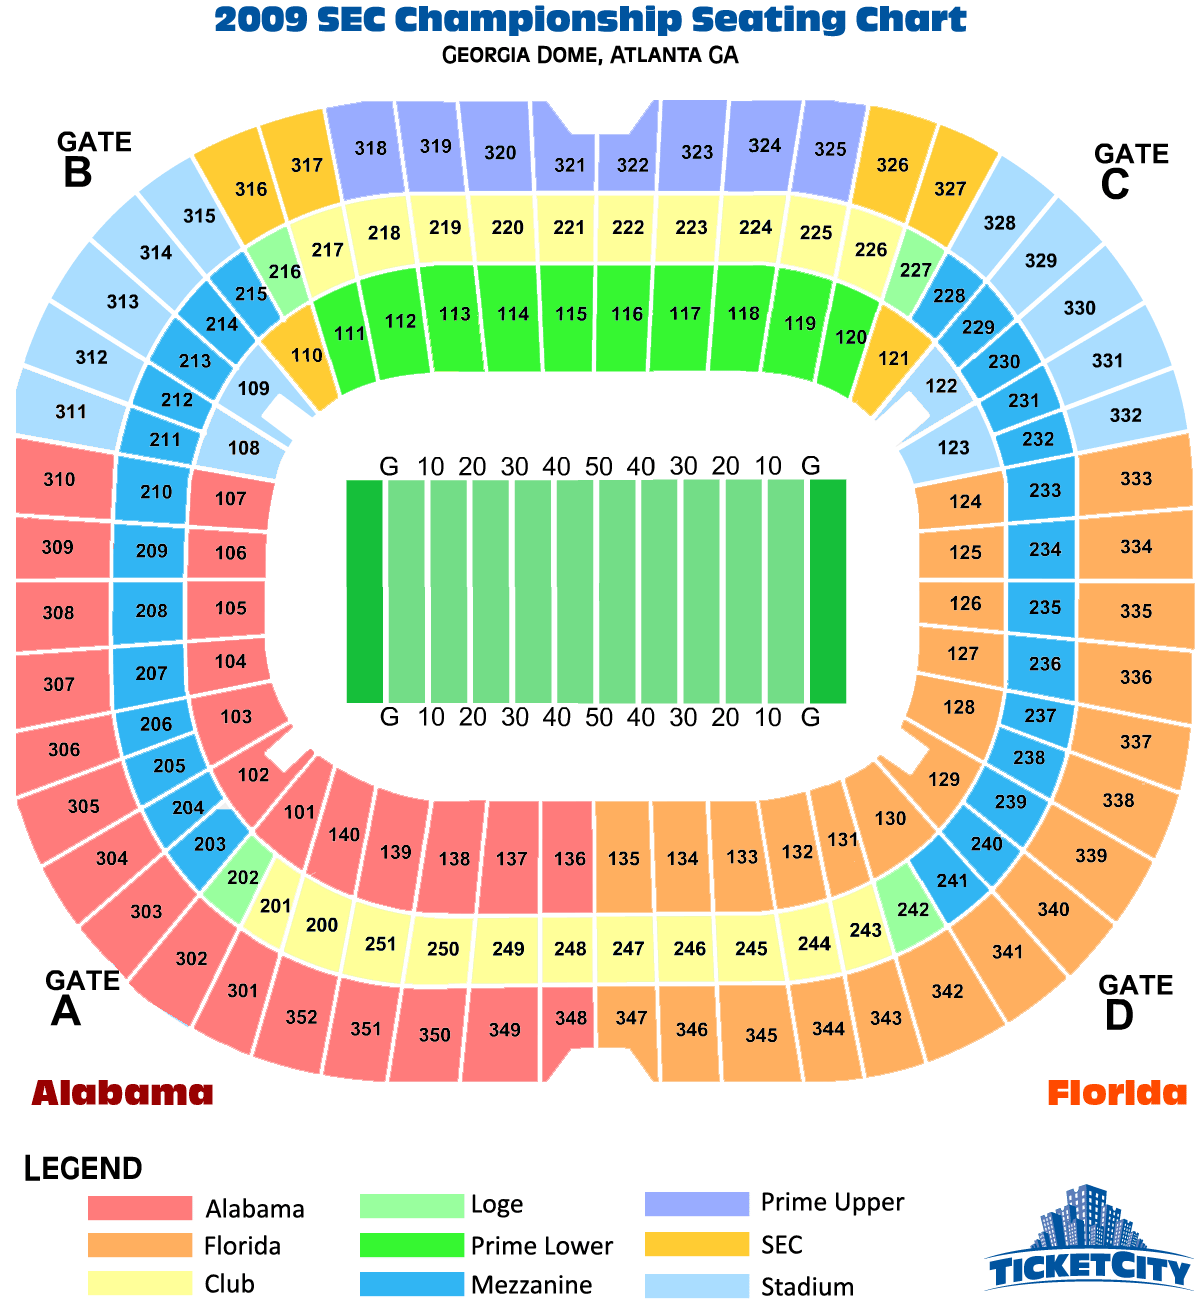 2009 SEC Championship Seating Chart Georgia Dome